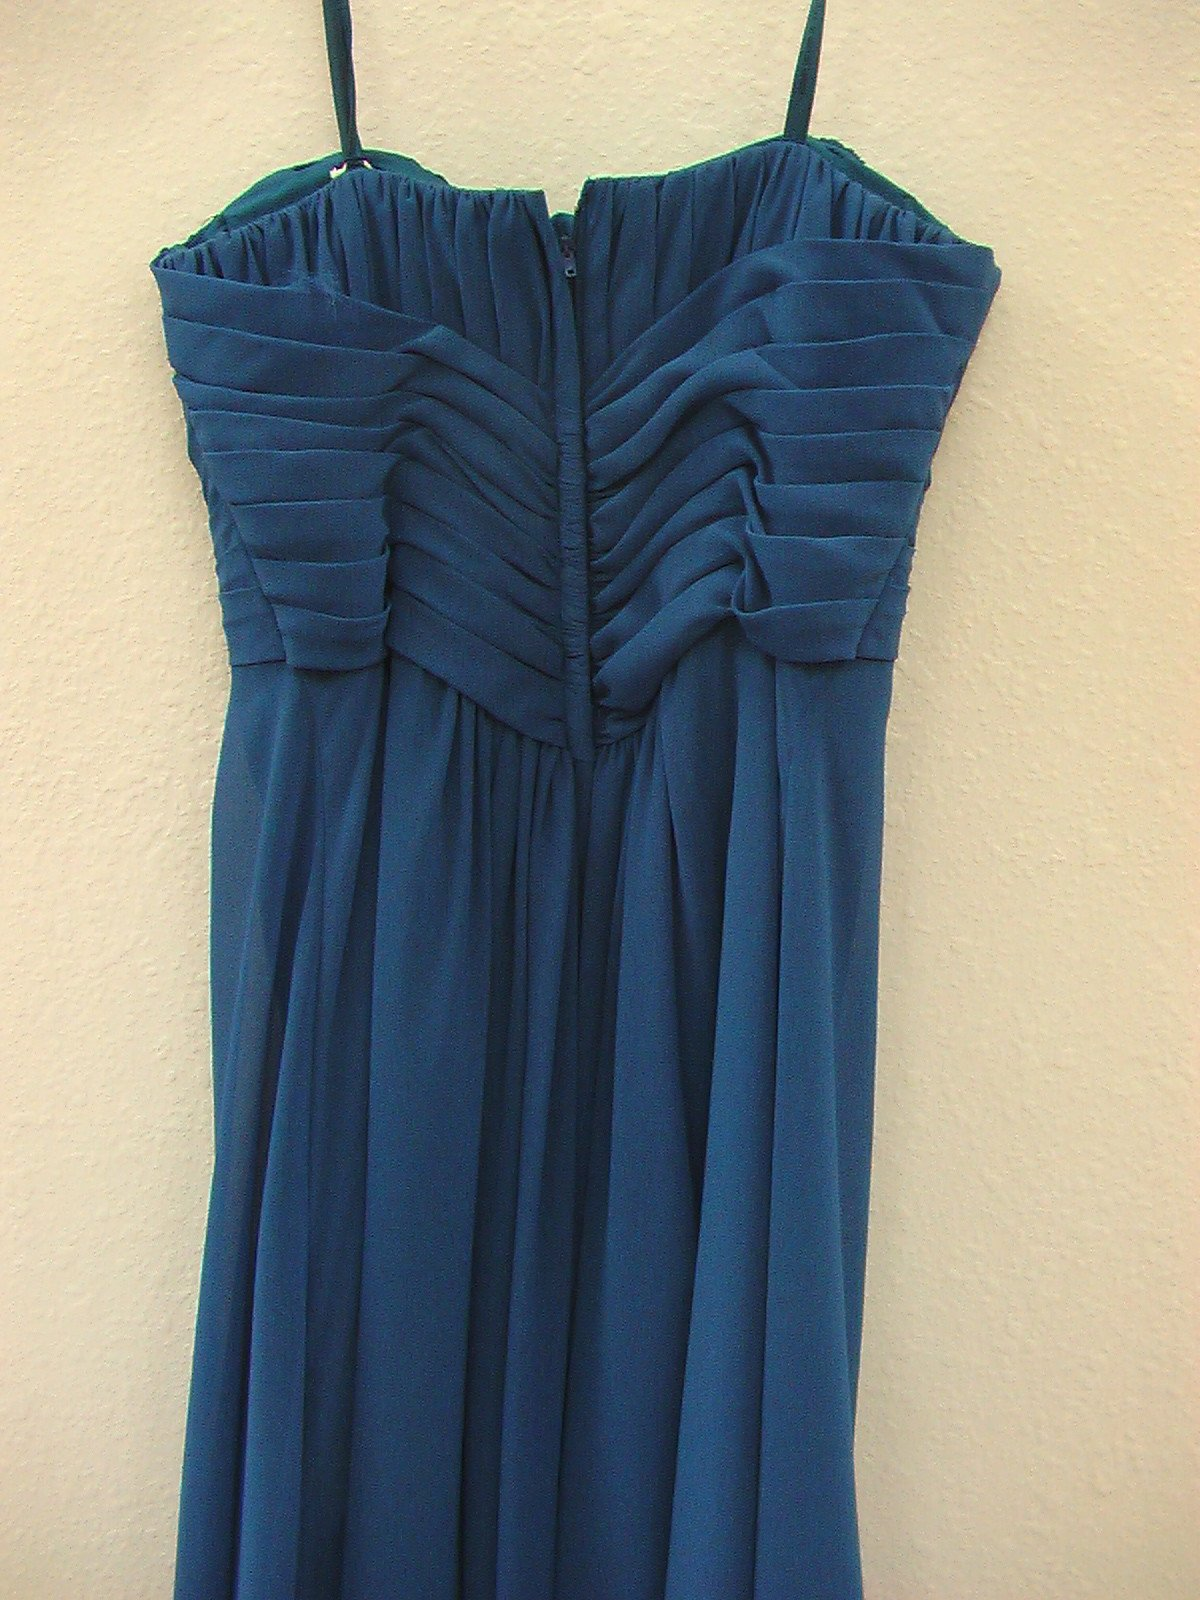 Mori Lee 852 Marine size 8 In Stock Bridesmaid Dress - Tom's Bridal